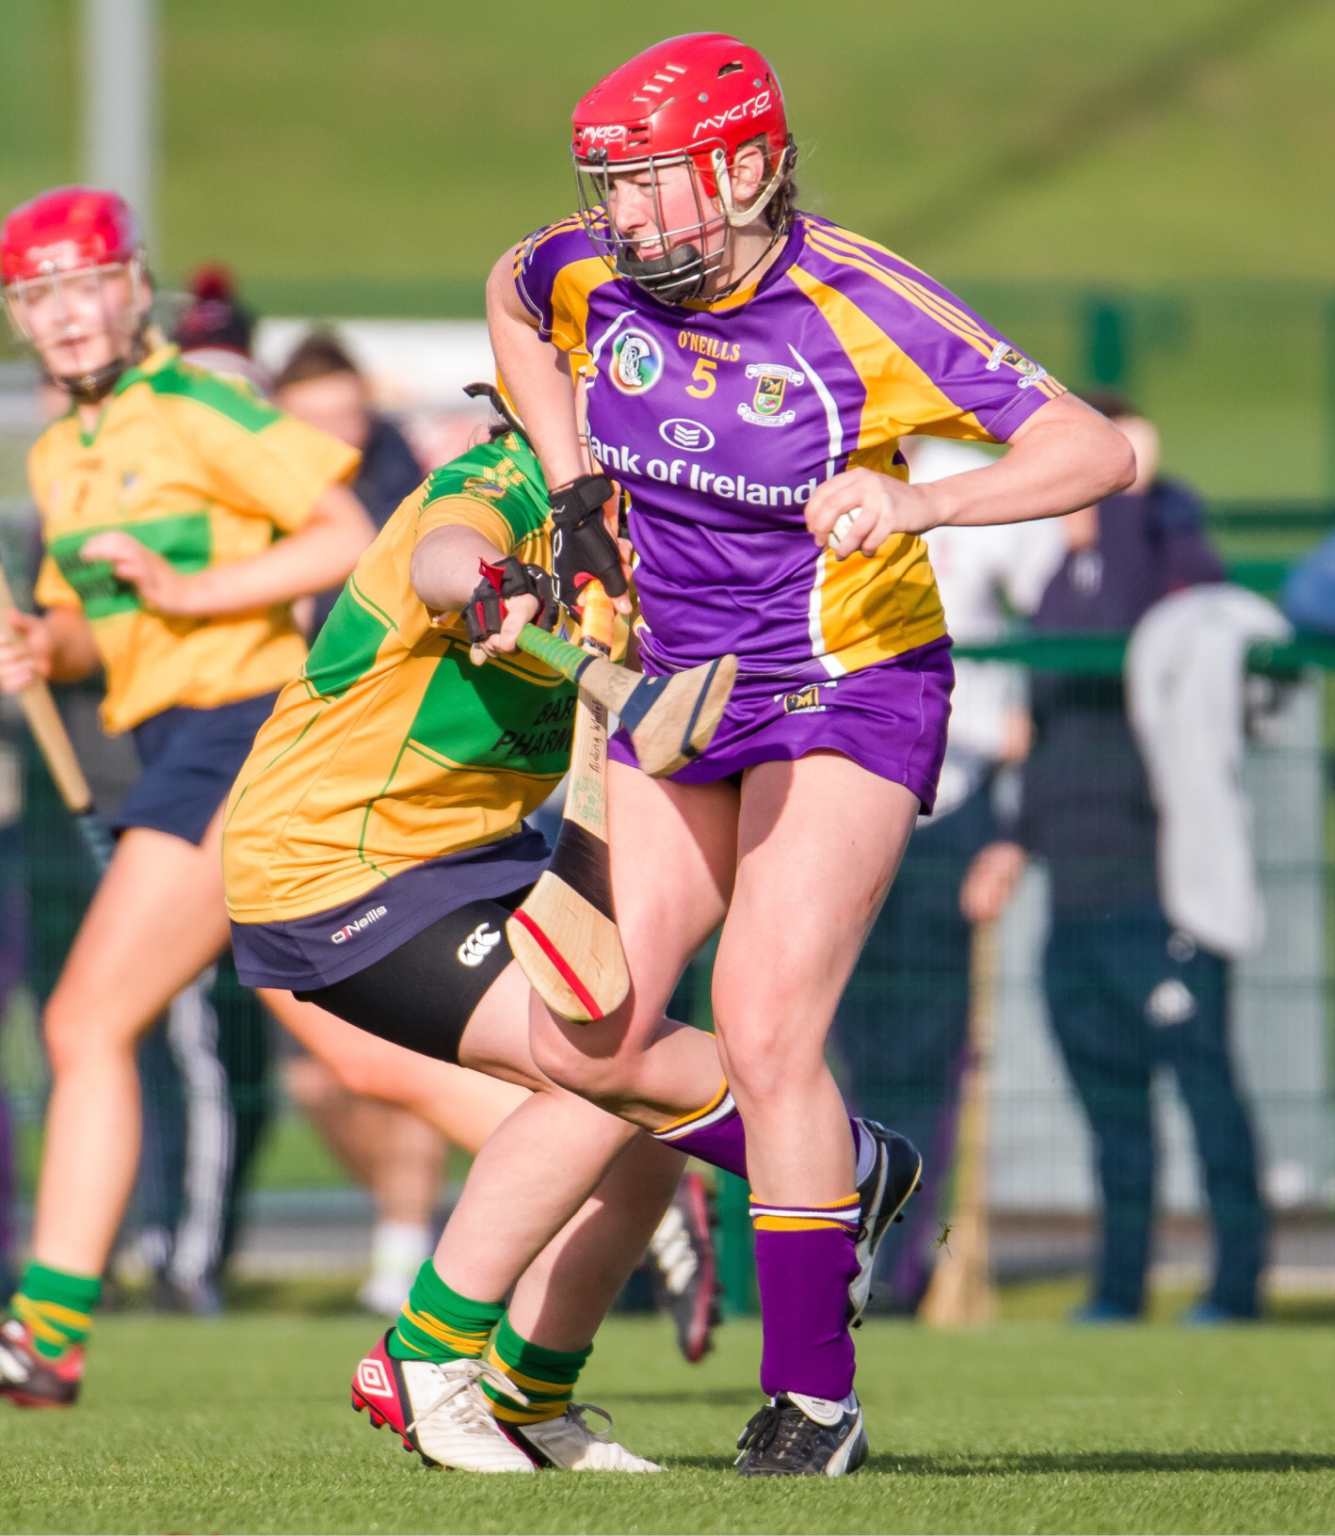 A Kilmacud Crokes camogie player comes out of defence with the ball during the senior 2 club championship final